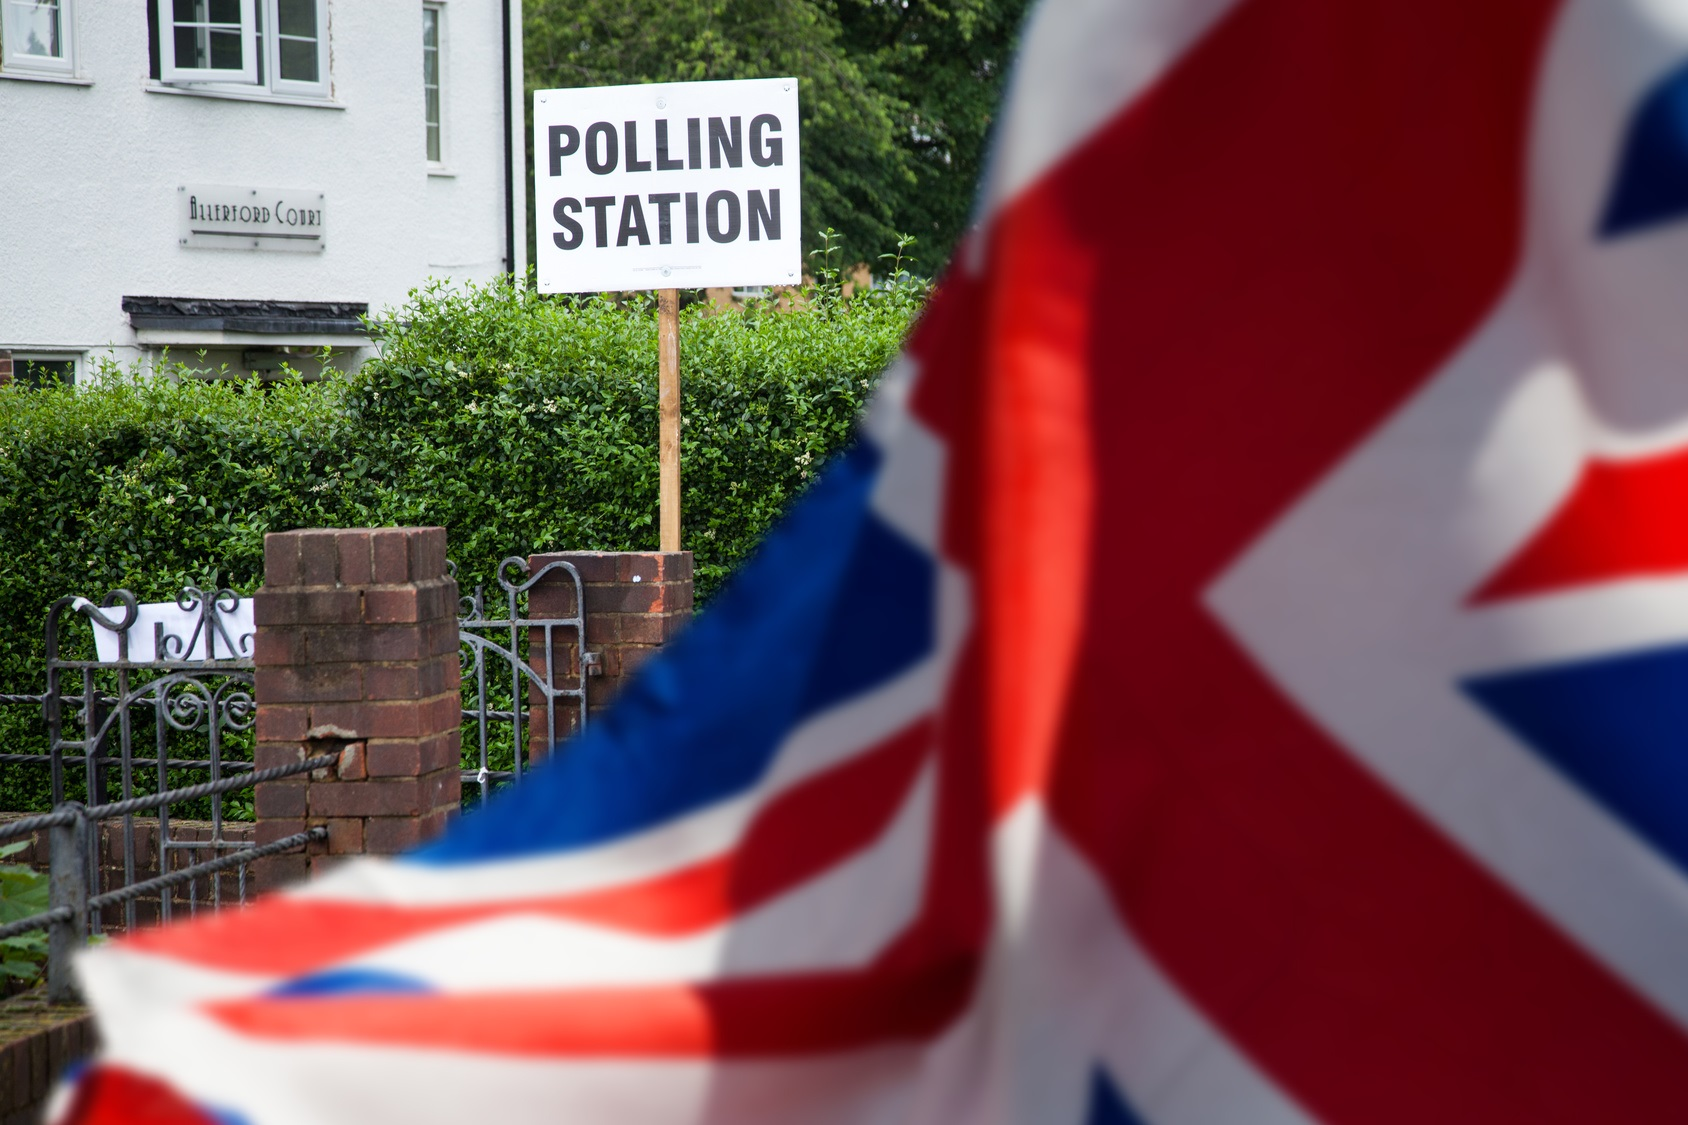 polling station sign and Union Jack flag - UK prepares for elections